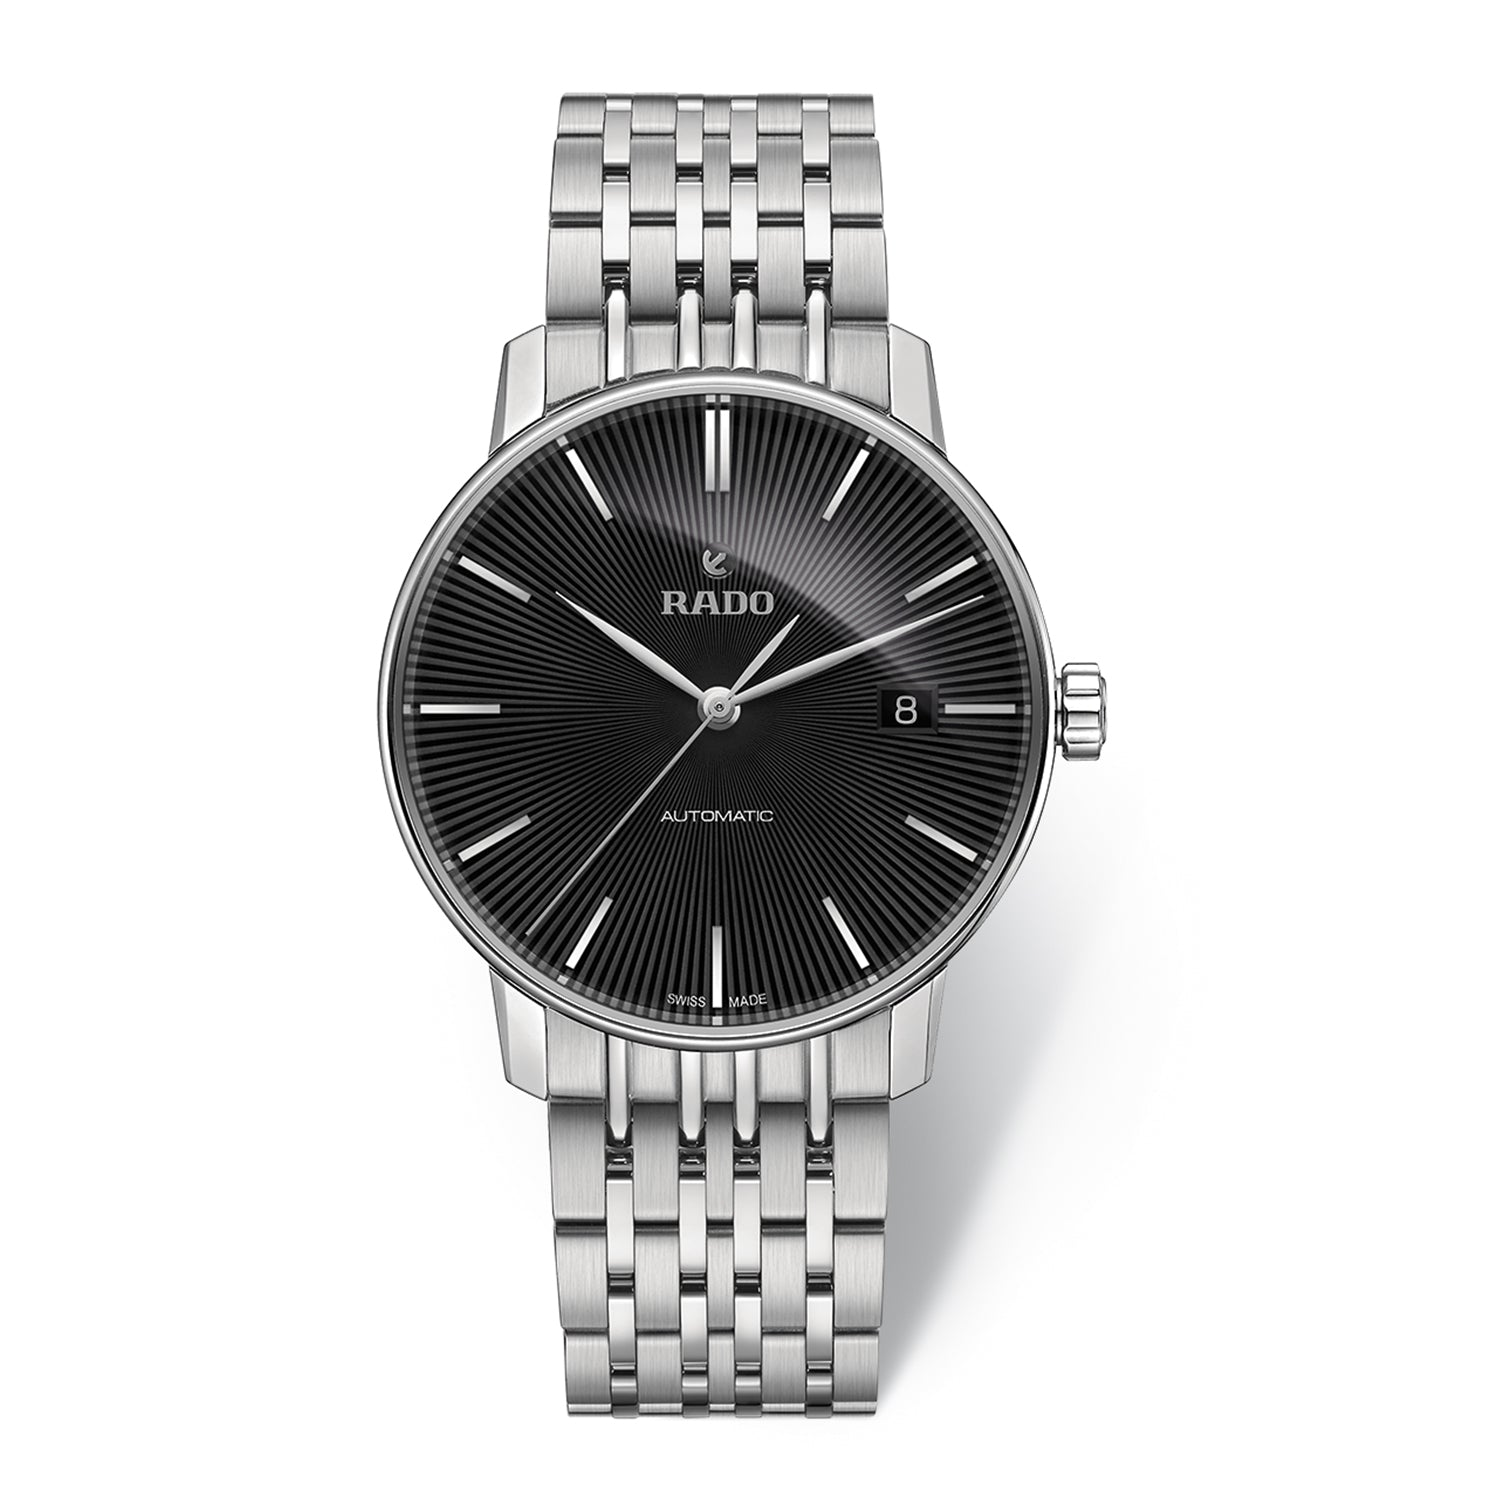 Rado Coupole Classic L watch with 9-Link Stainless steel bracelet, black dial